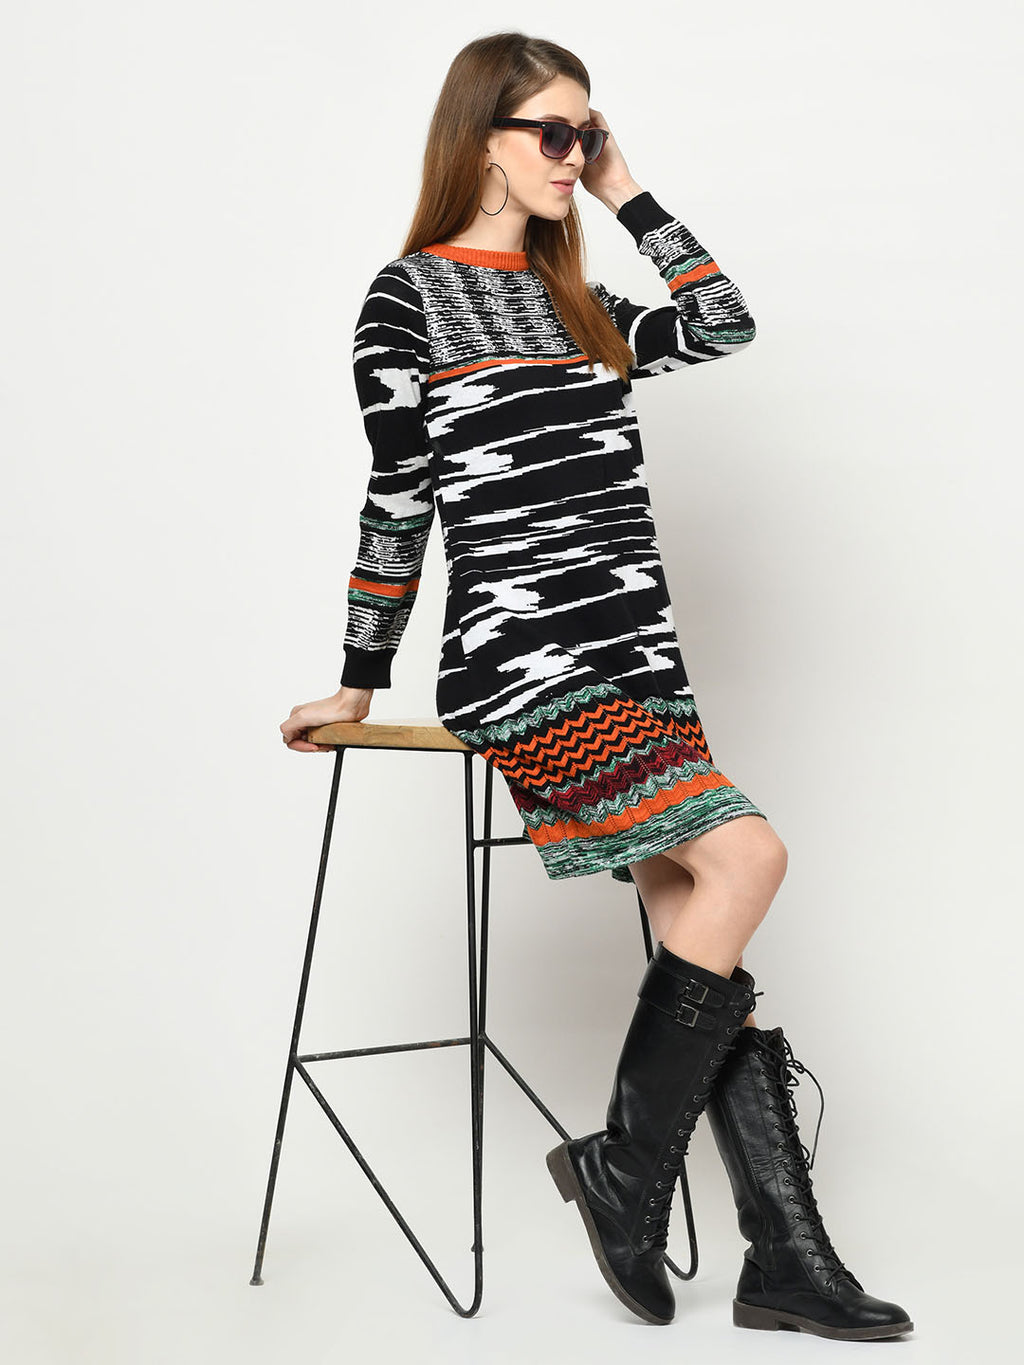 100% Cotton Tunic Multi-Pattern Black, White And Orange Dress